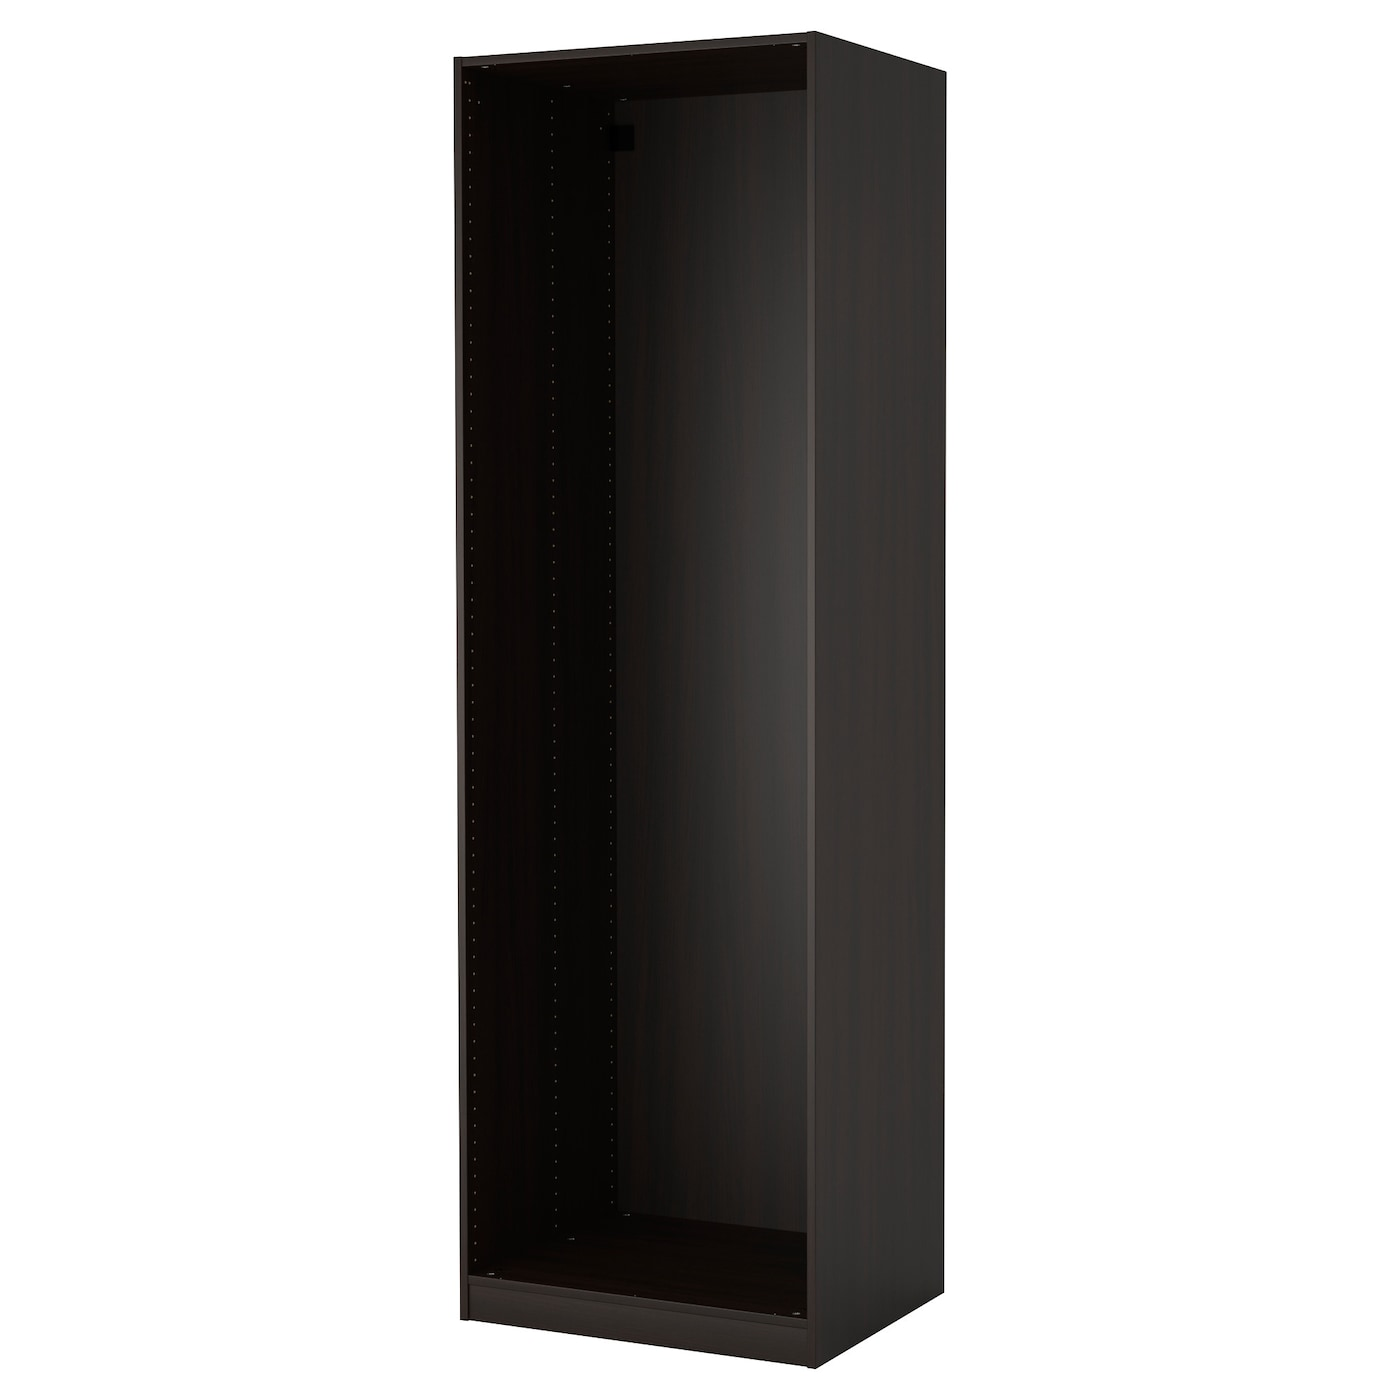 pax caisson d 39 armoire brun noir 75 x 58 x 236 cm ikea. Black Bedroom Furniture Sets. Home Design Ideas